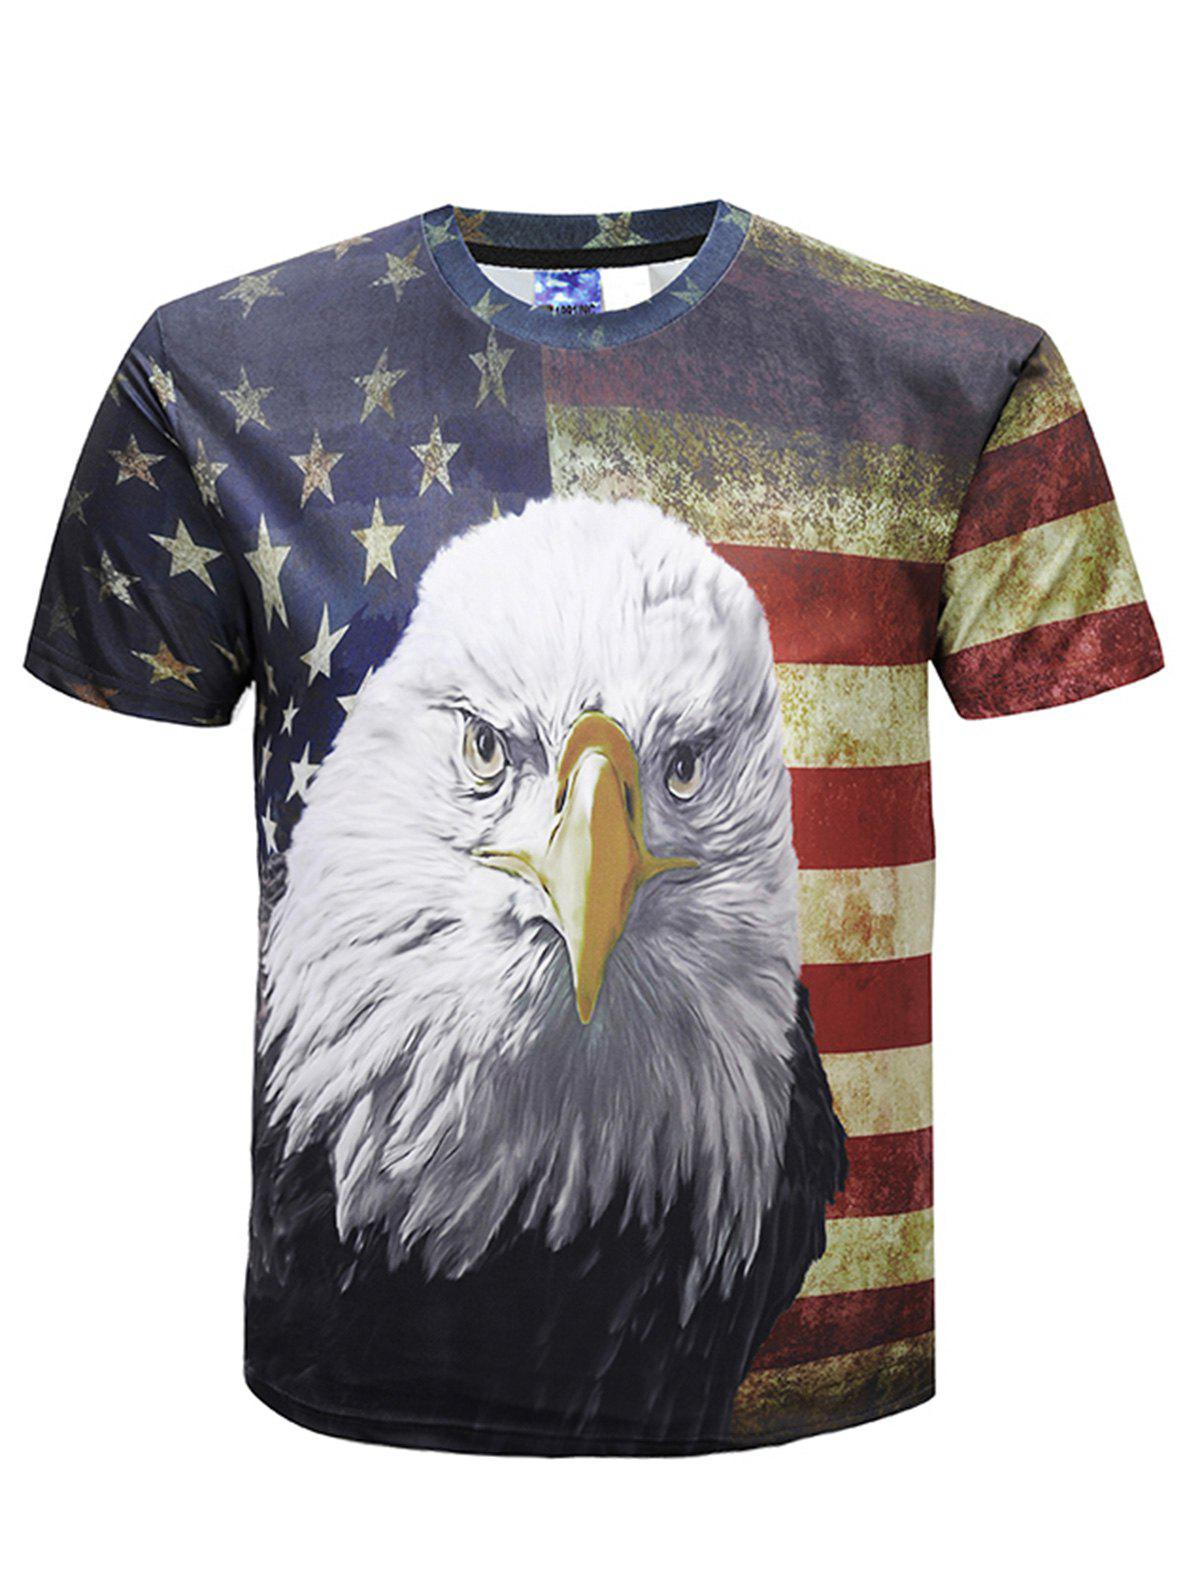 Staring Eagle Pattern Casual T-shirt - multicolor 4XL